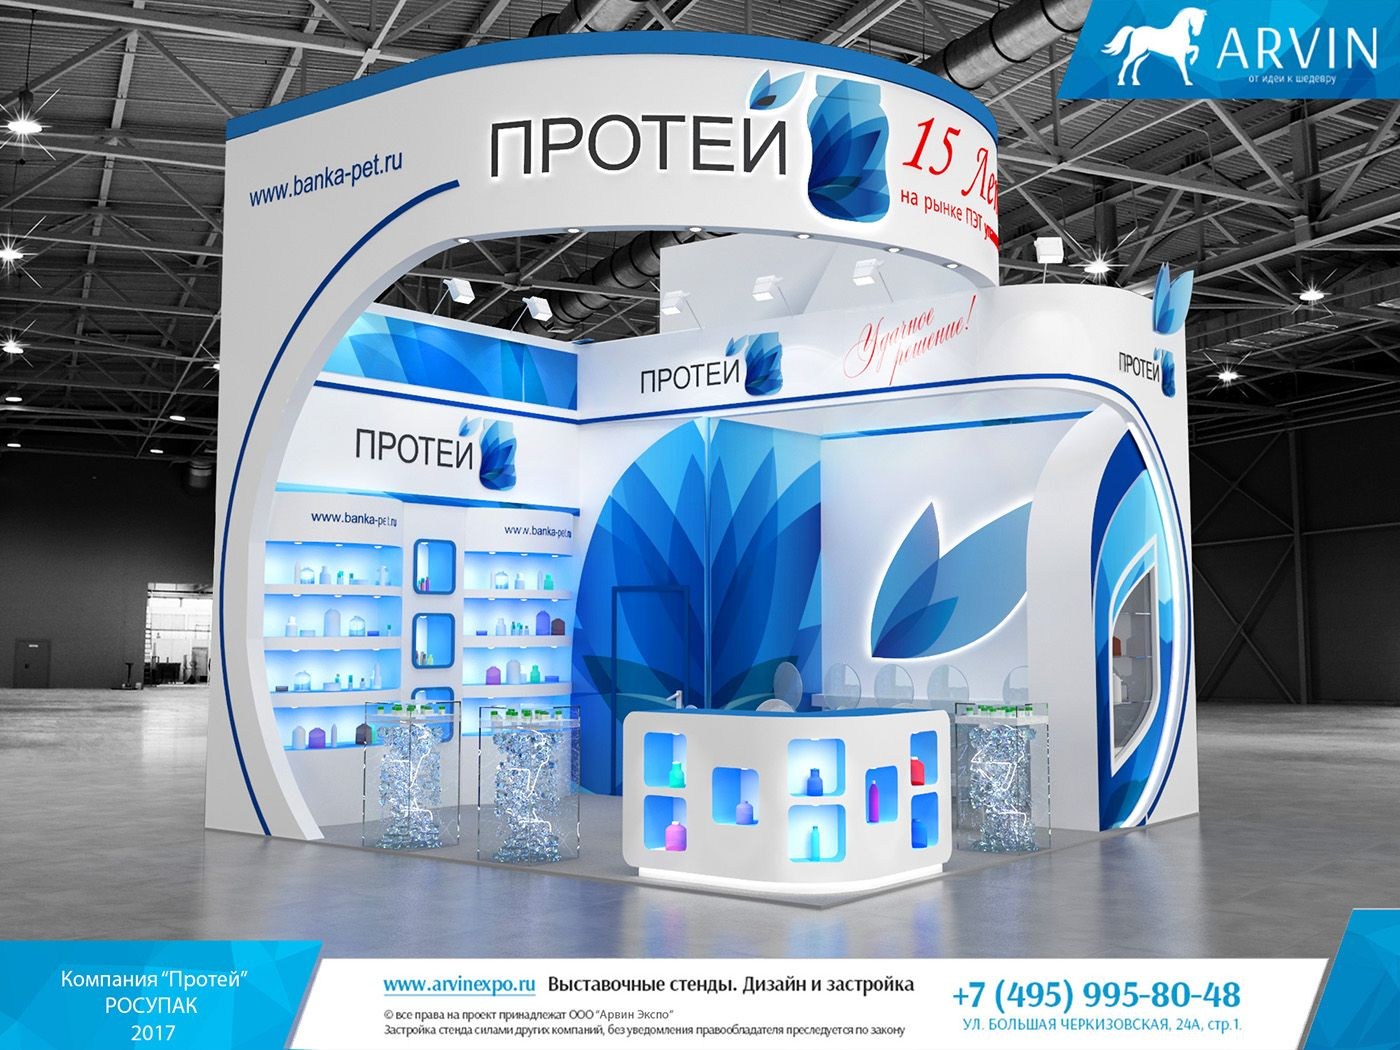 Exhibition Stall Reference : Протей design reference exhibition booth design exhibition